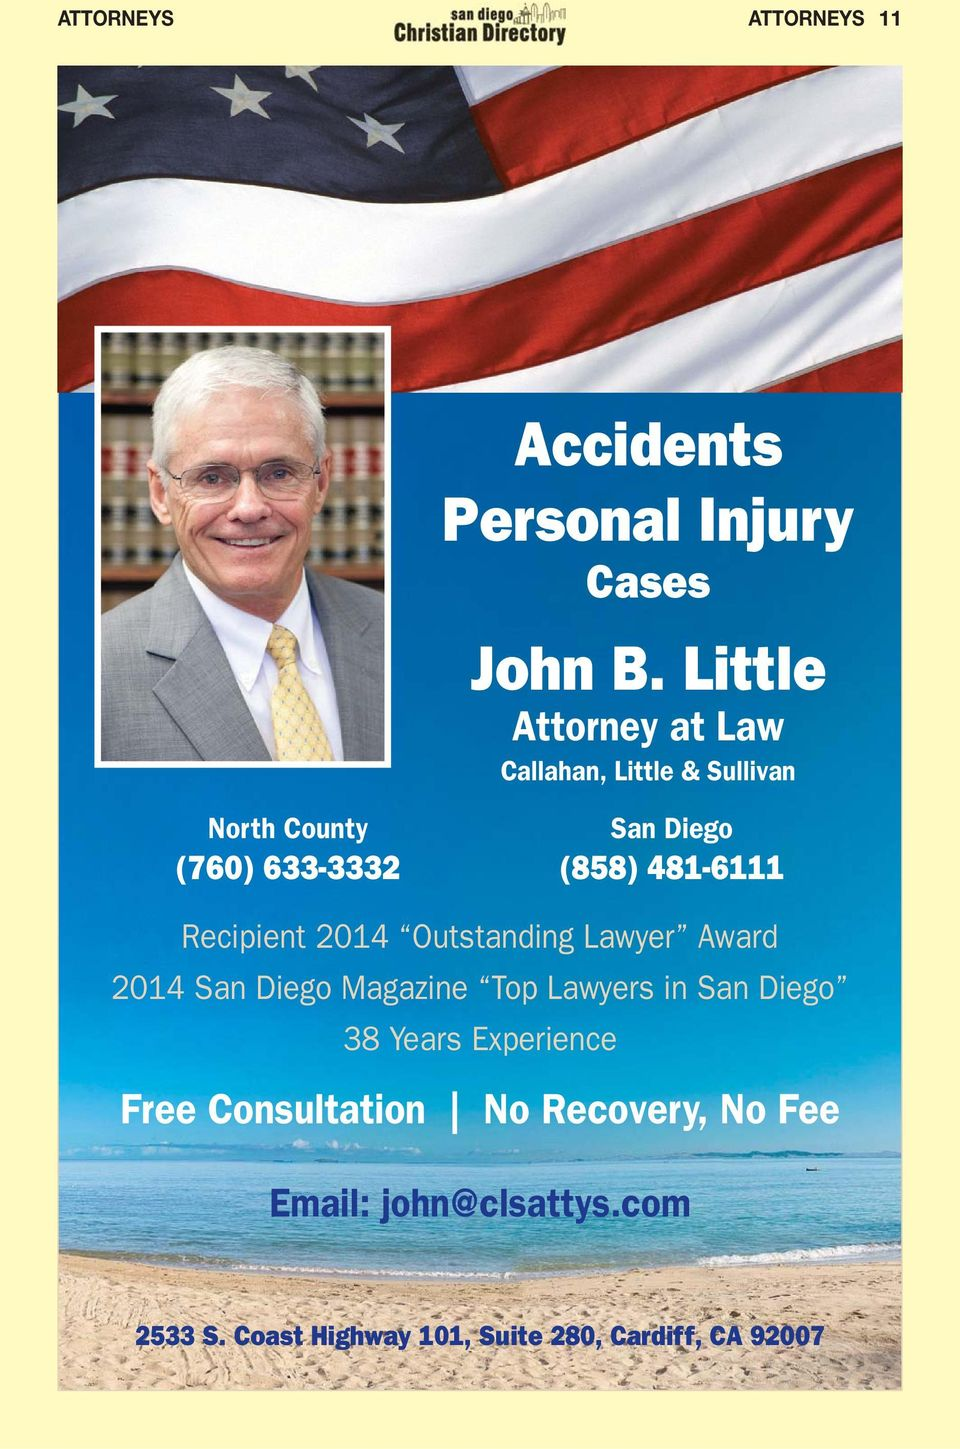 Outstanding Lawyer Award 2014 San Diego Magazine Top Lawyers in San Diego 38 Years Experience Free